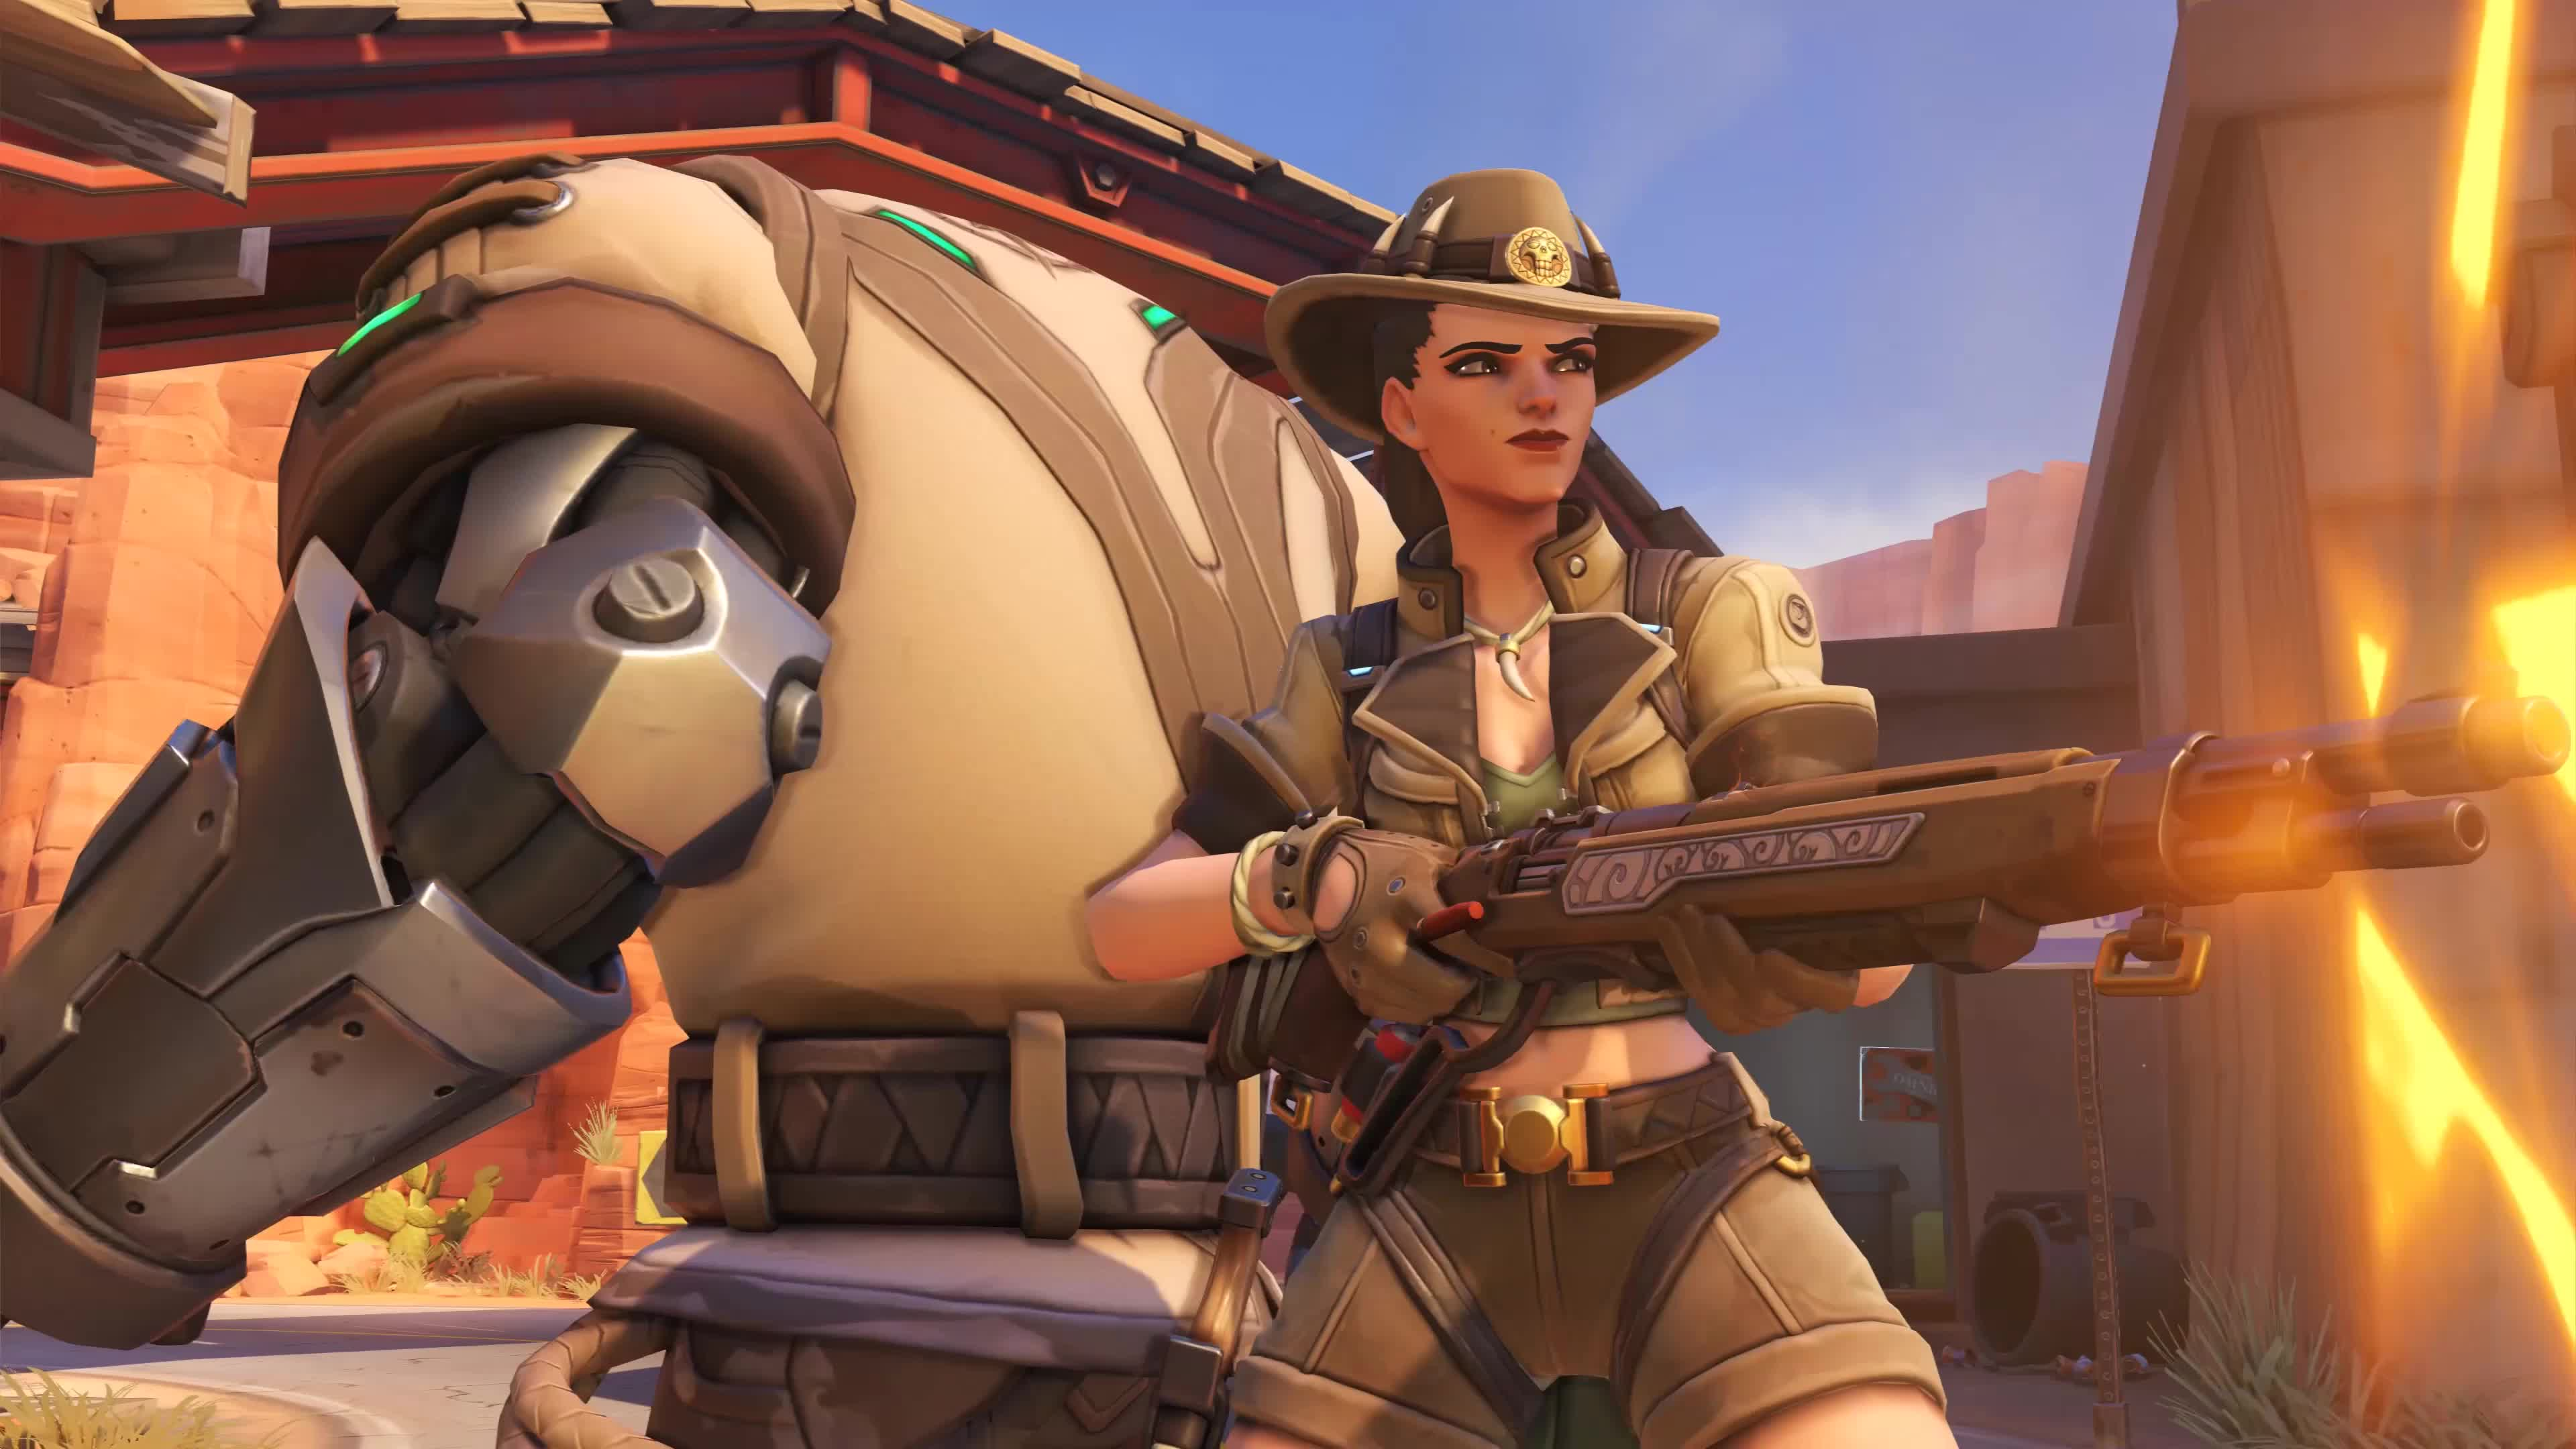 Ashe, Overwatch, highlight, Ashe Highlight Intros With A Twist GIFs